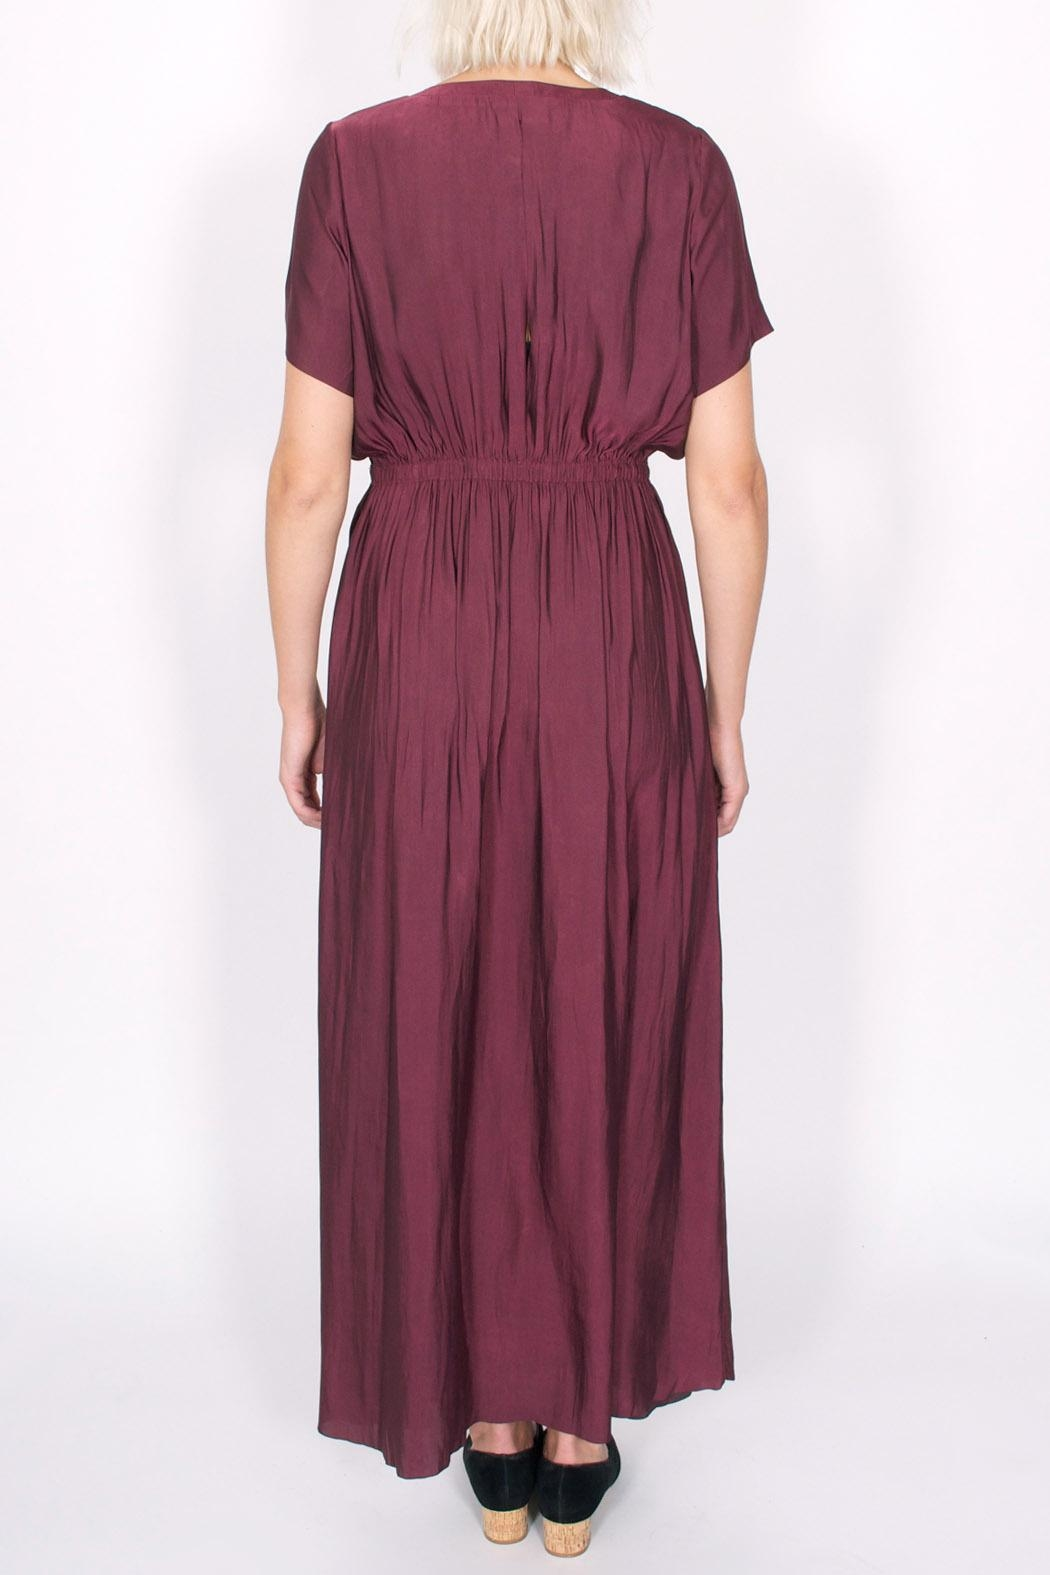 Storm & Marie Dona Maxi Dress - Side Cropped Image